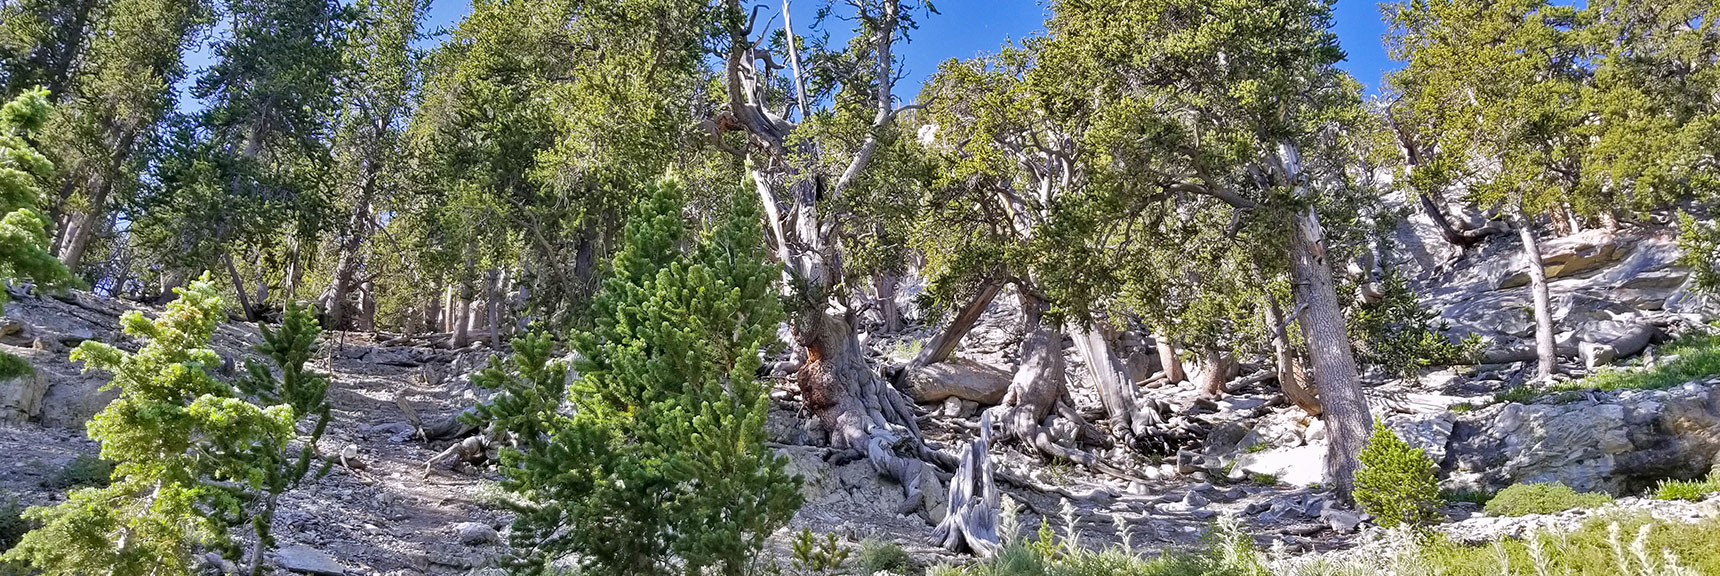 Beginning of the Avalanche Slope Above Mummy Springs on the Way to Mummy's Knees | Mummy Mountain's Knees | Mt. Charleston Wilderness, Nevada 015